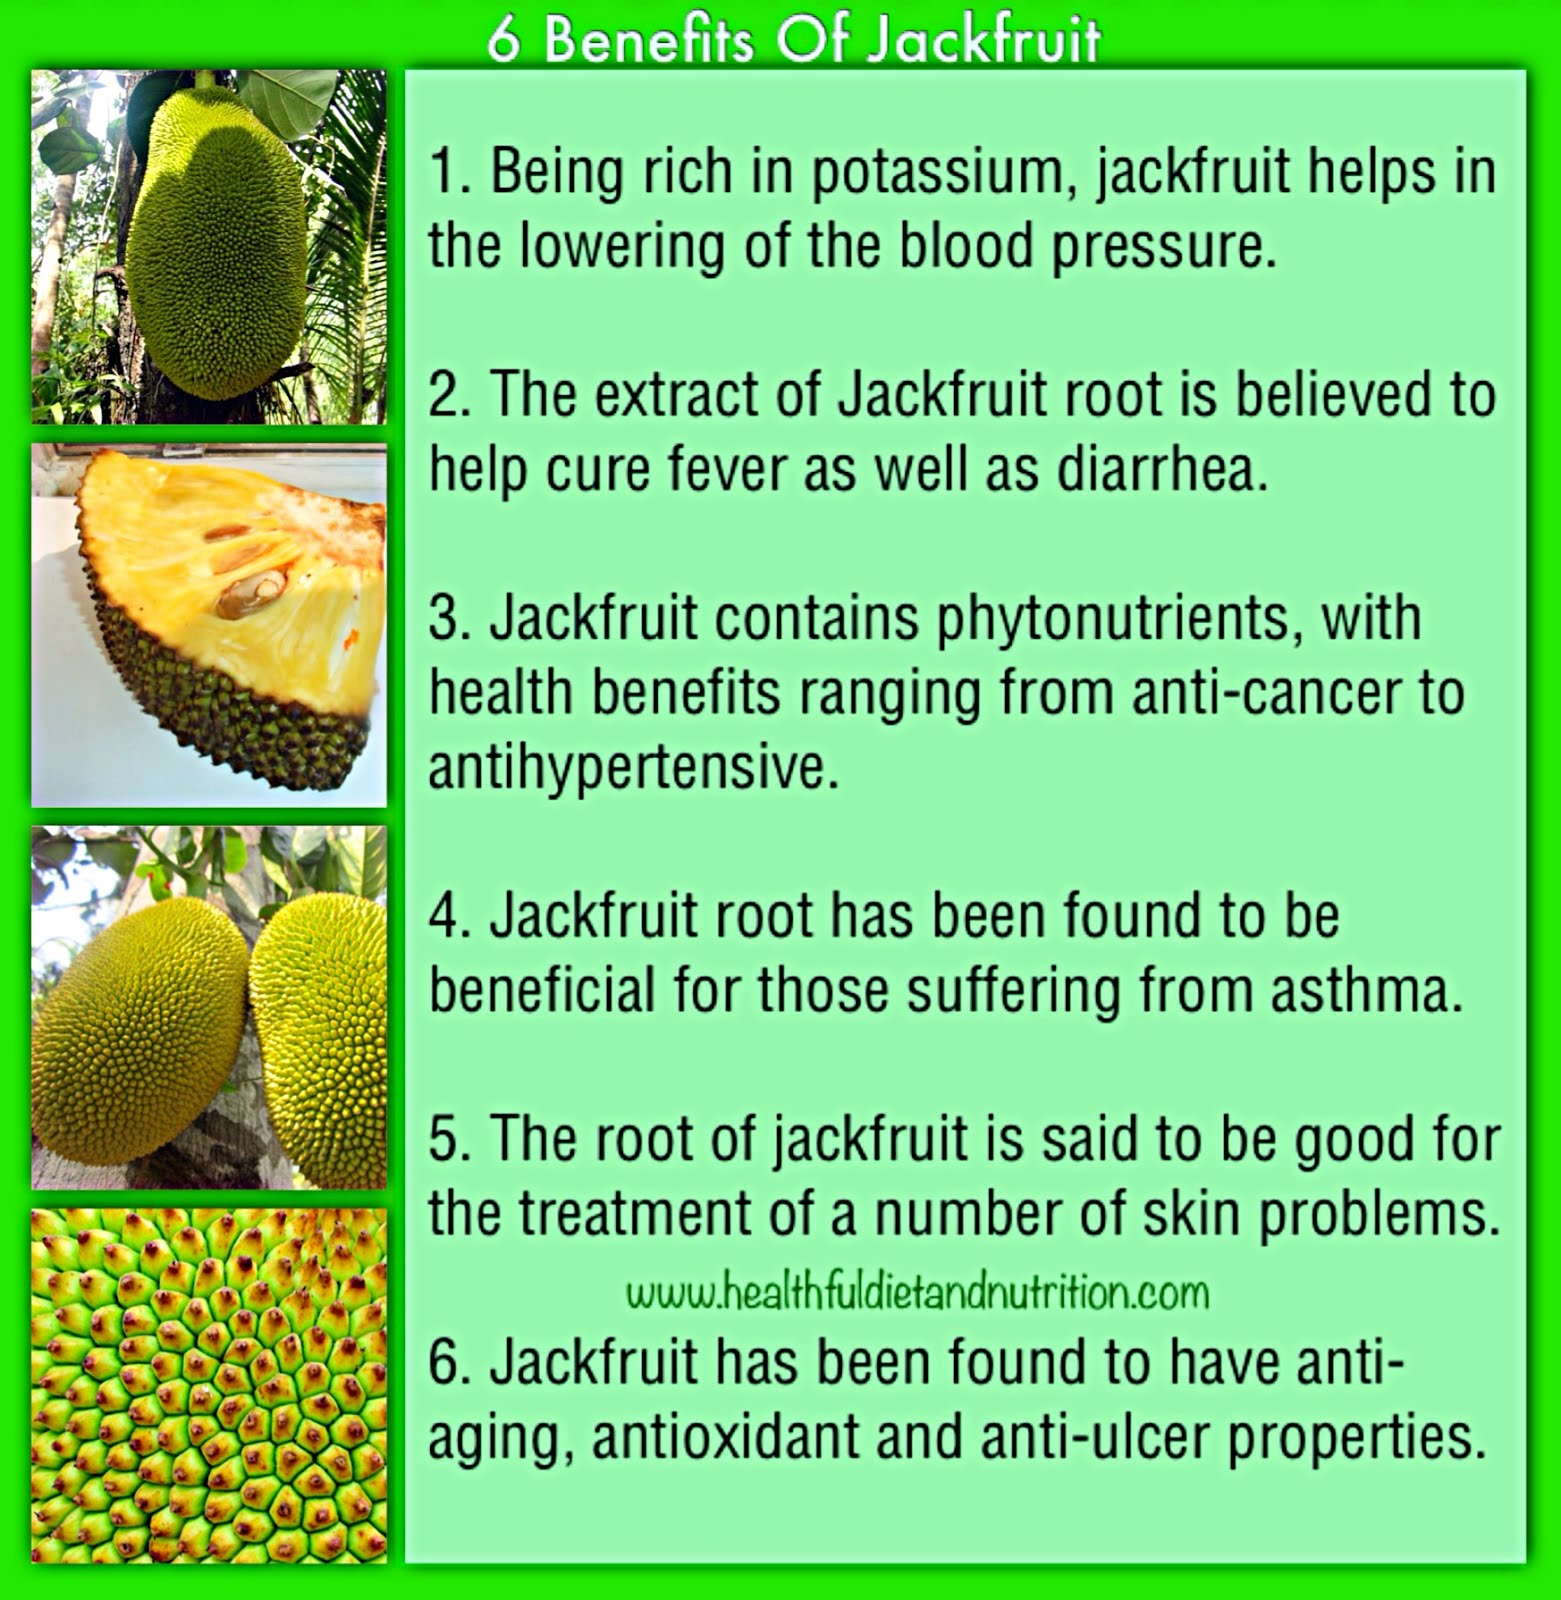 benefits jackfruit